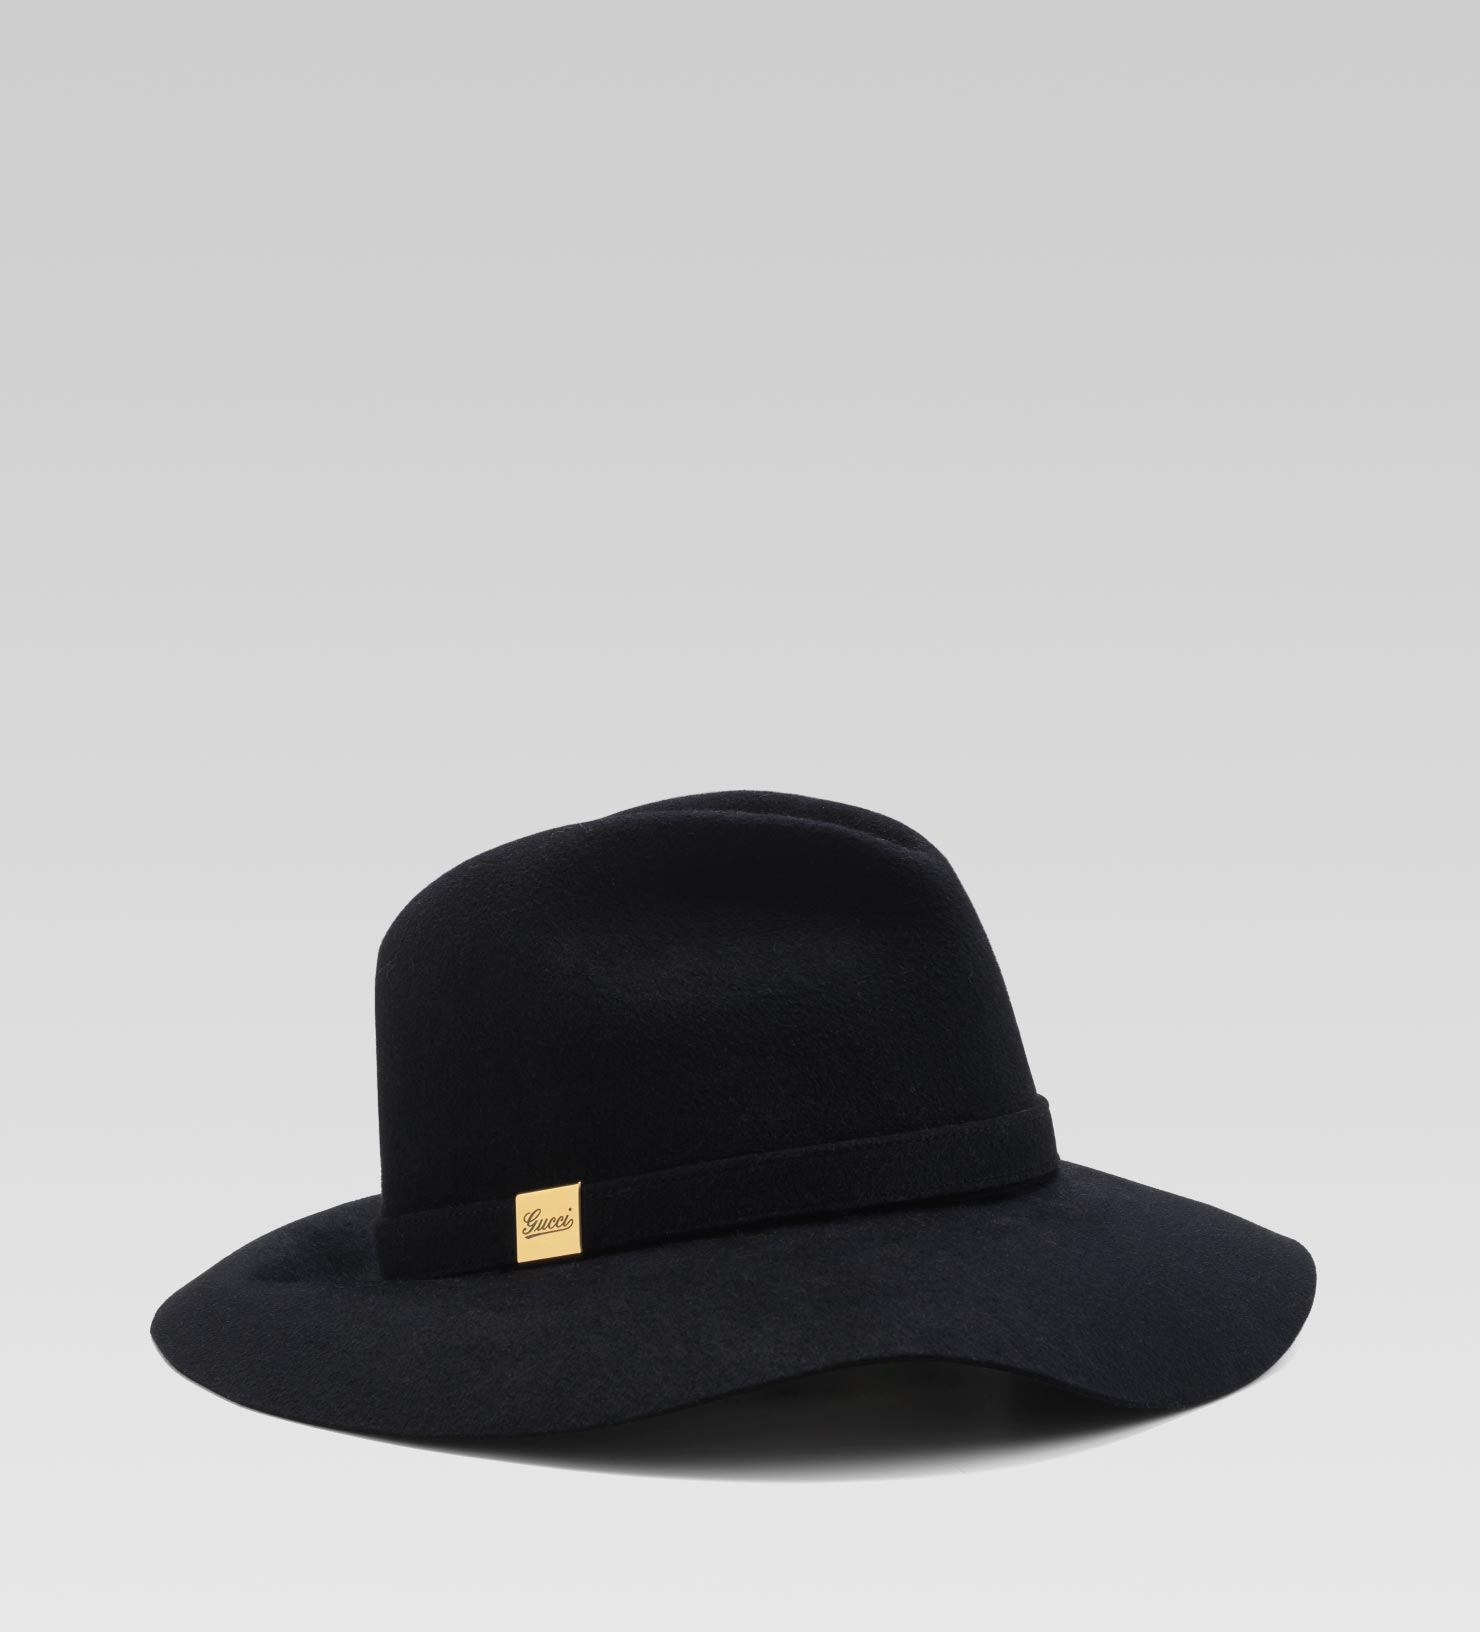 ef91516d388ca Lyst - Gucci Trilby Hat with Engraved Gucci Script Logo in Black